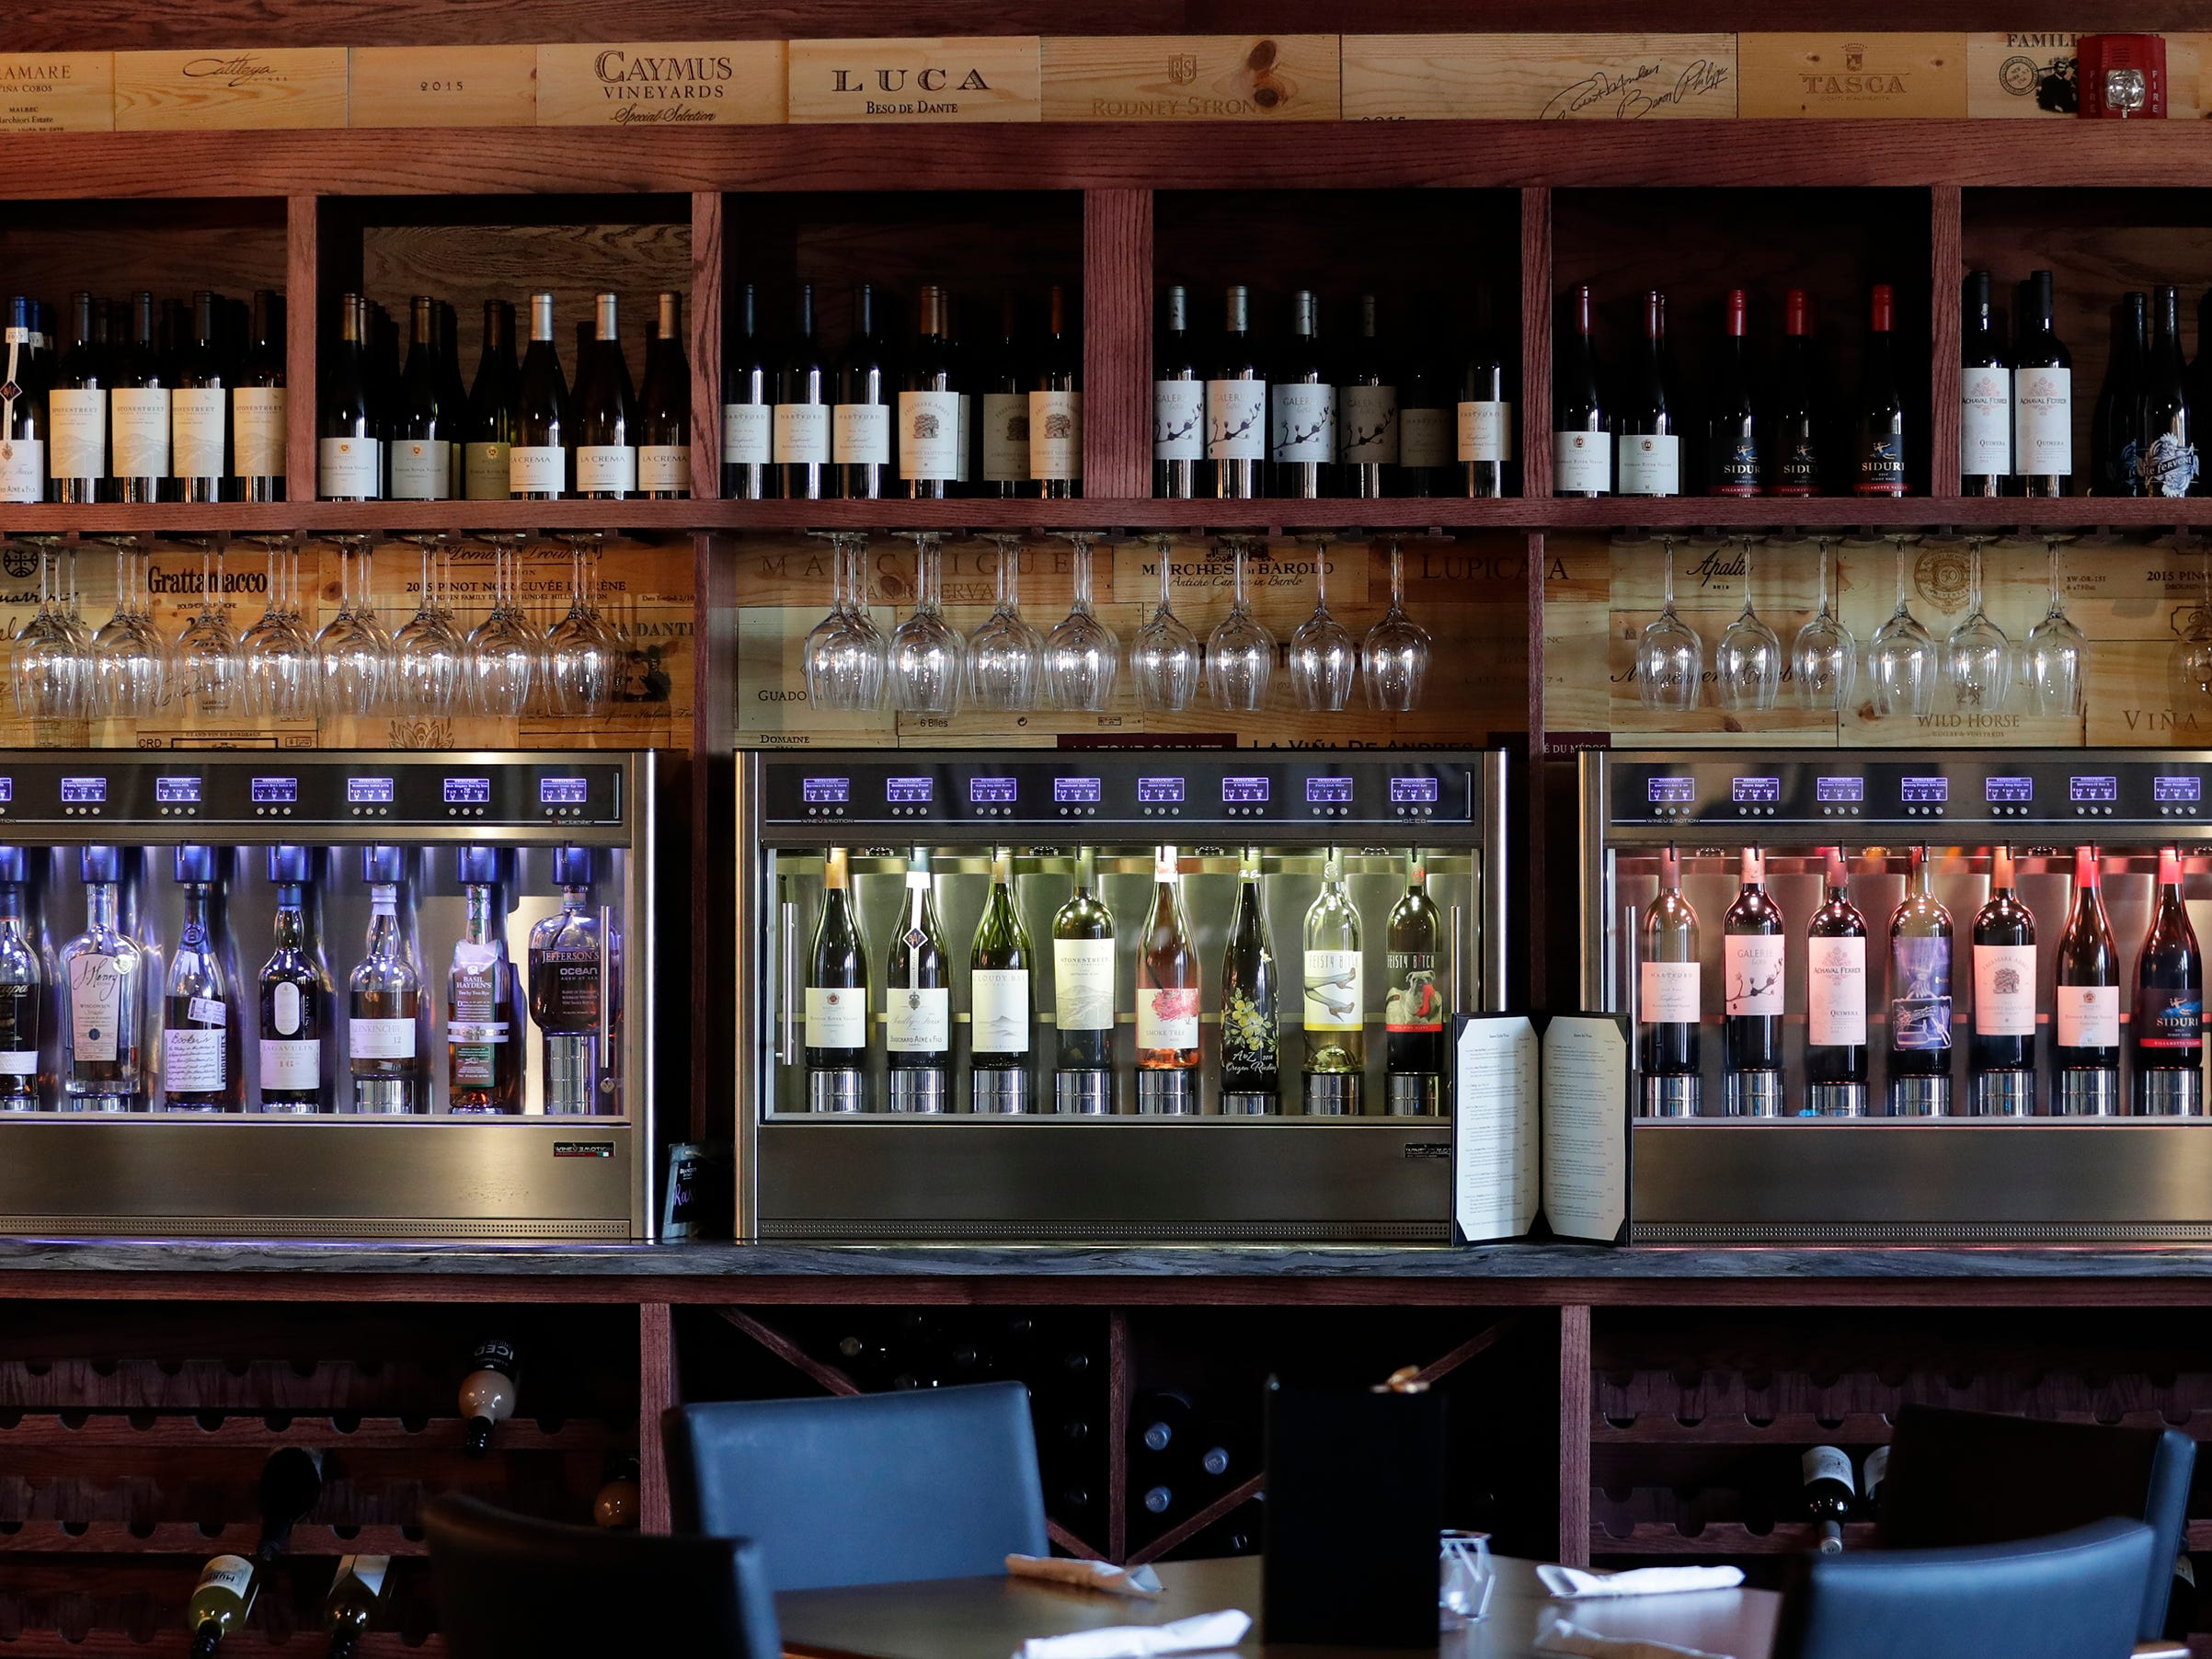 The self-service wine machine at the Waterfront Wine Bar Saturday, May 4, 2019, in Manitowoc, Wis. Joshua Clark/USA TODAY NETWORK-Wisconsin